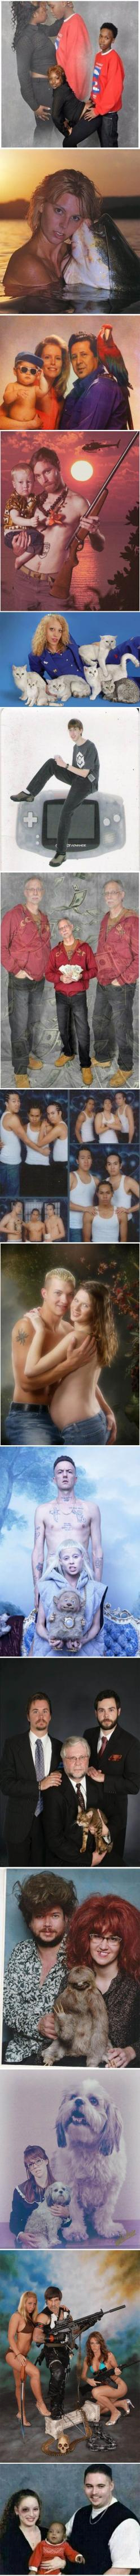 Weird just weird, but the last one made me laugh so hard: Picture, Ummm What, Giggle, Cant, Be Real, Awkward Family Photos, Awkward Photos